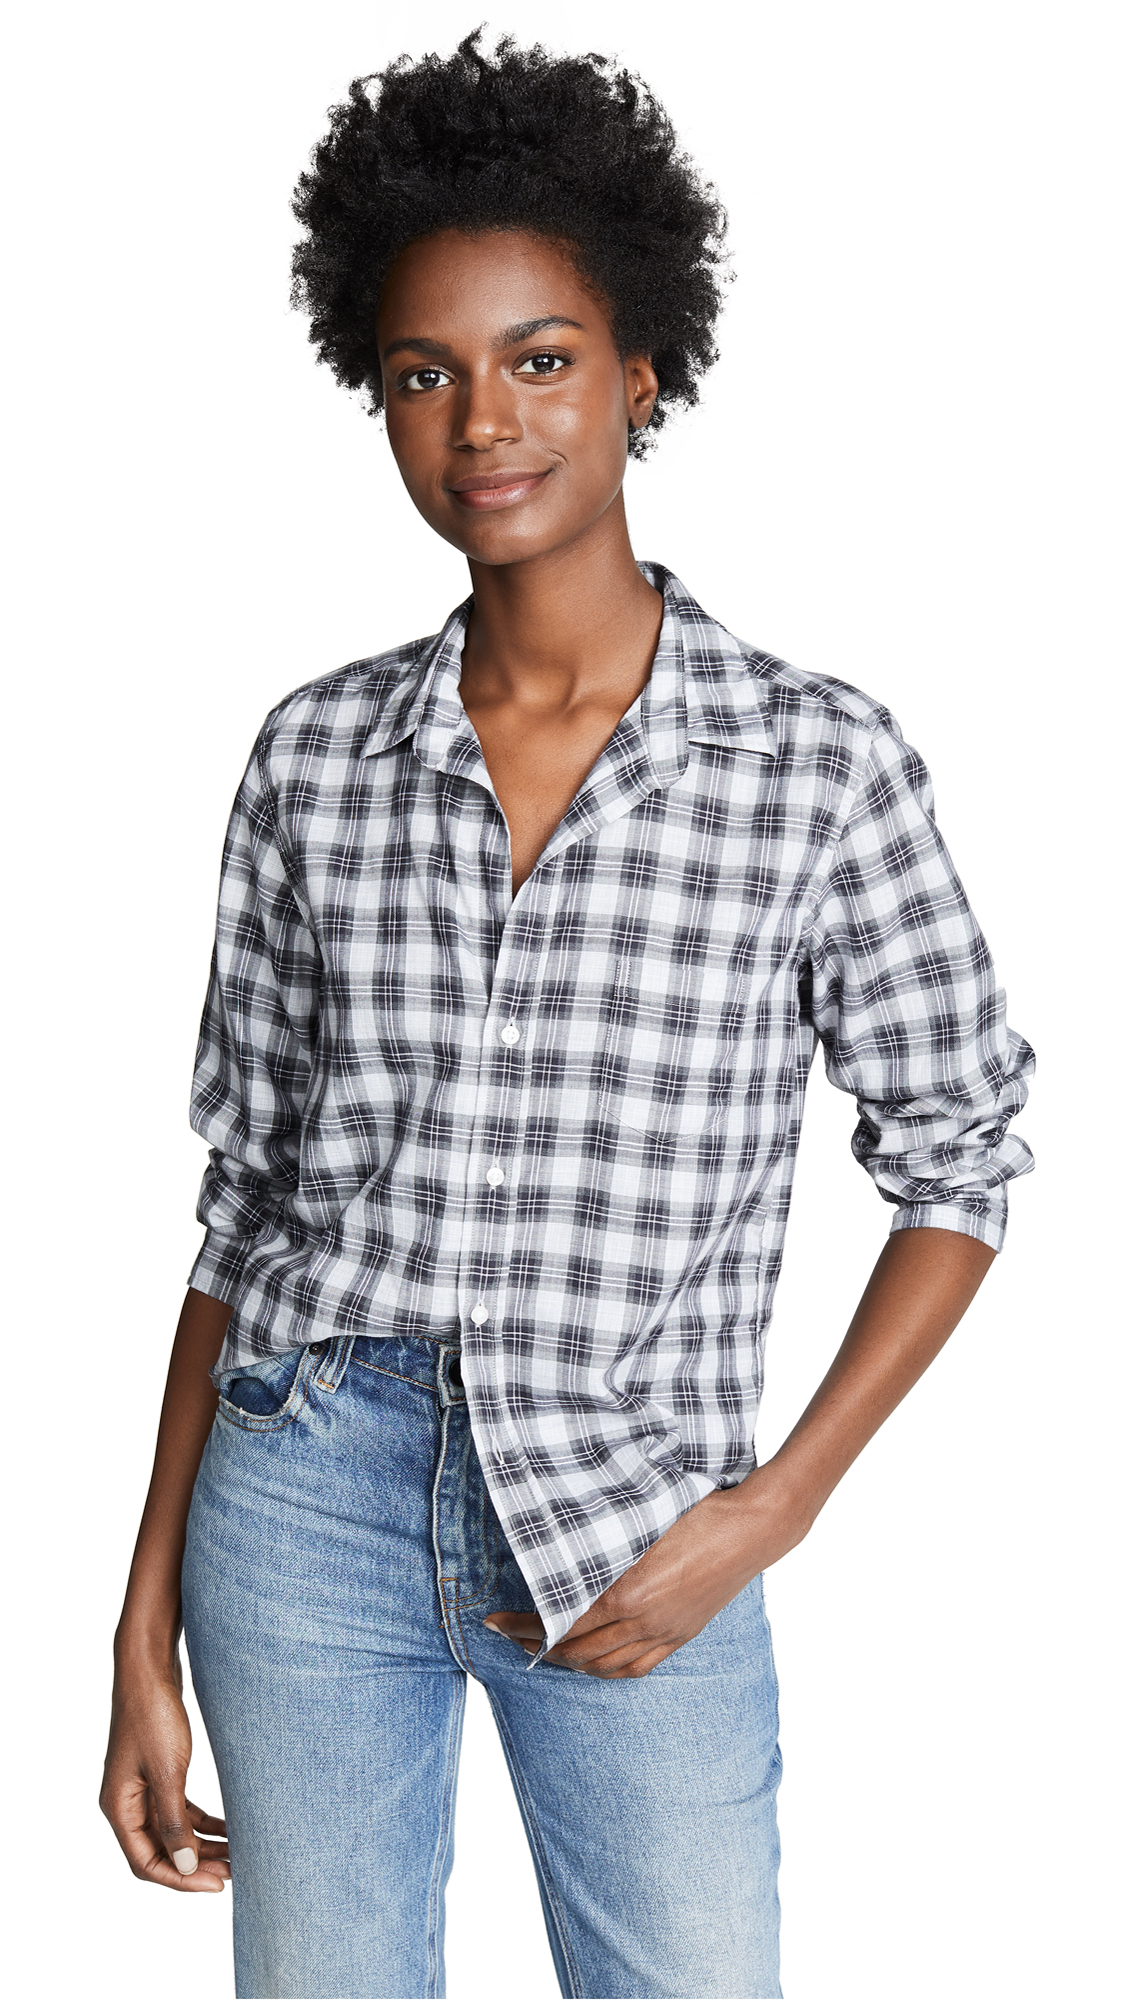 FRANK & EILEEN Barry Button Down in Heather Grey/Black/Small Plaid